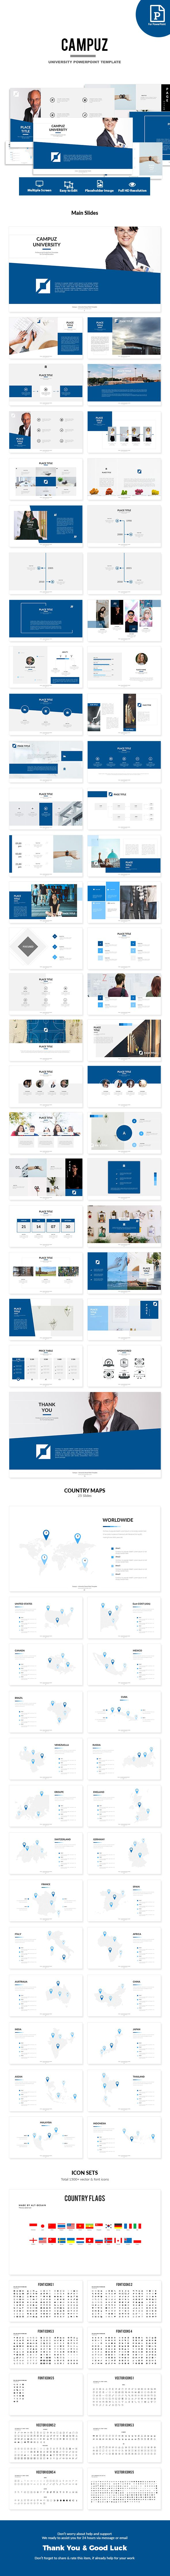 Campuz university powerpoint template catlogo campuz university powerpoint template creative powerpoint templates toneelgroepblik